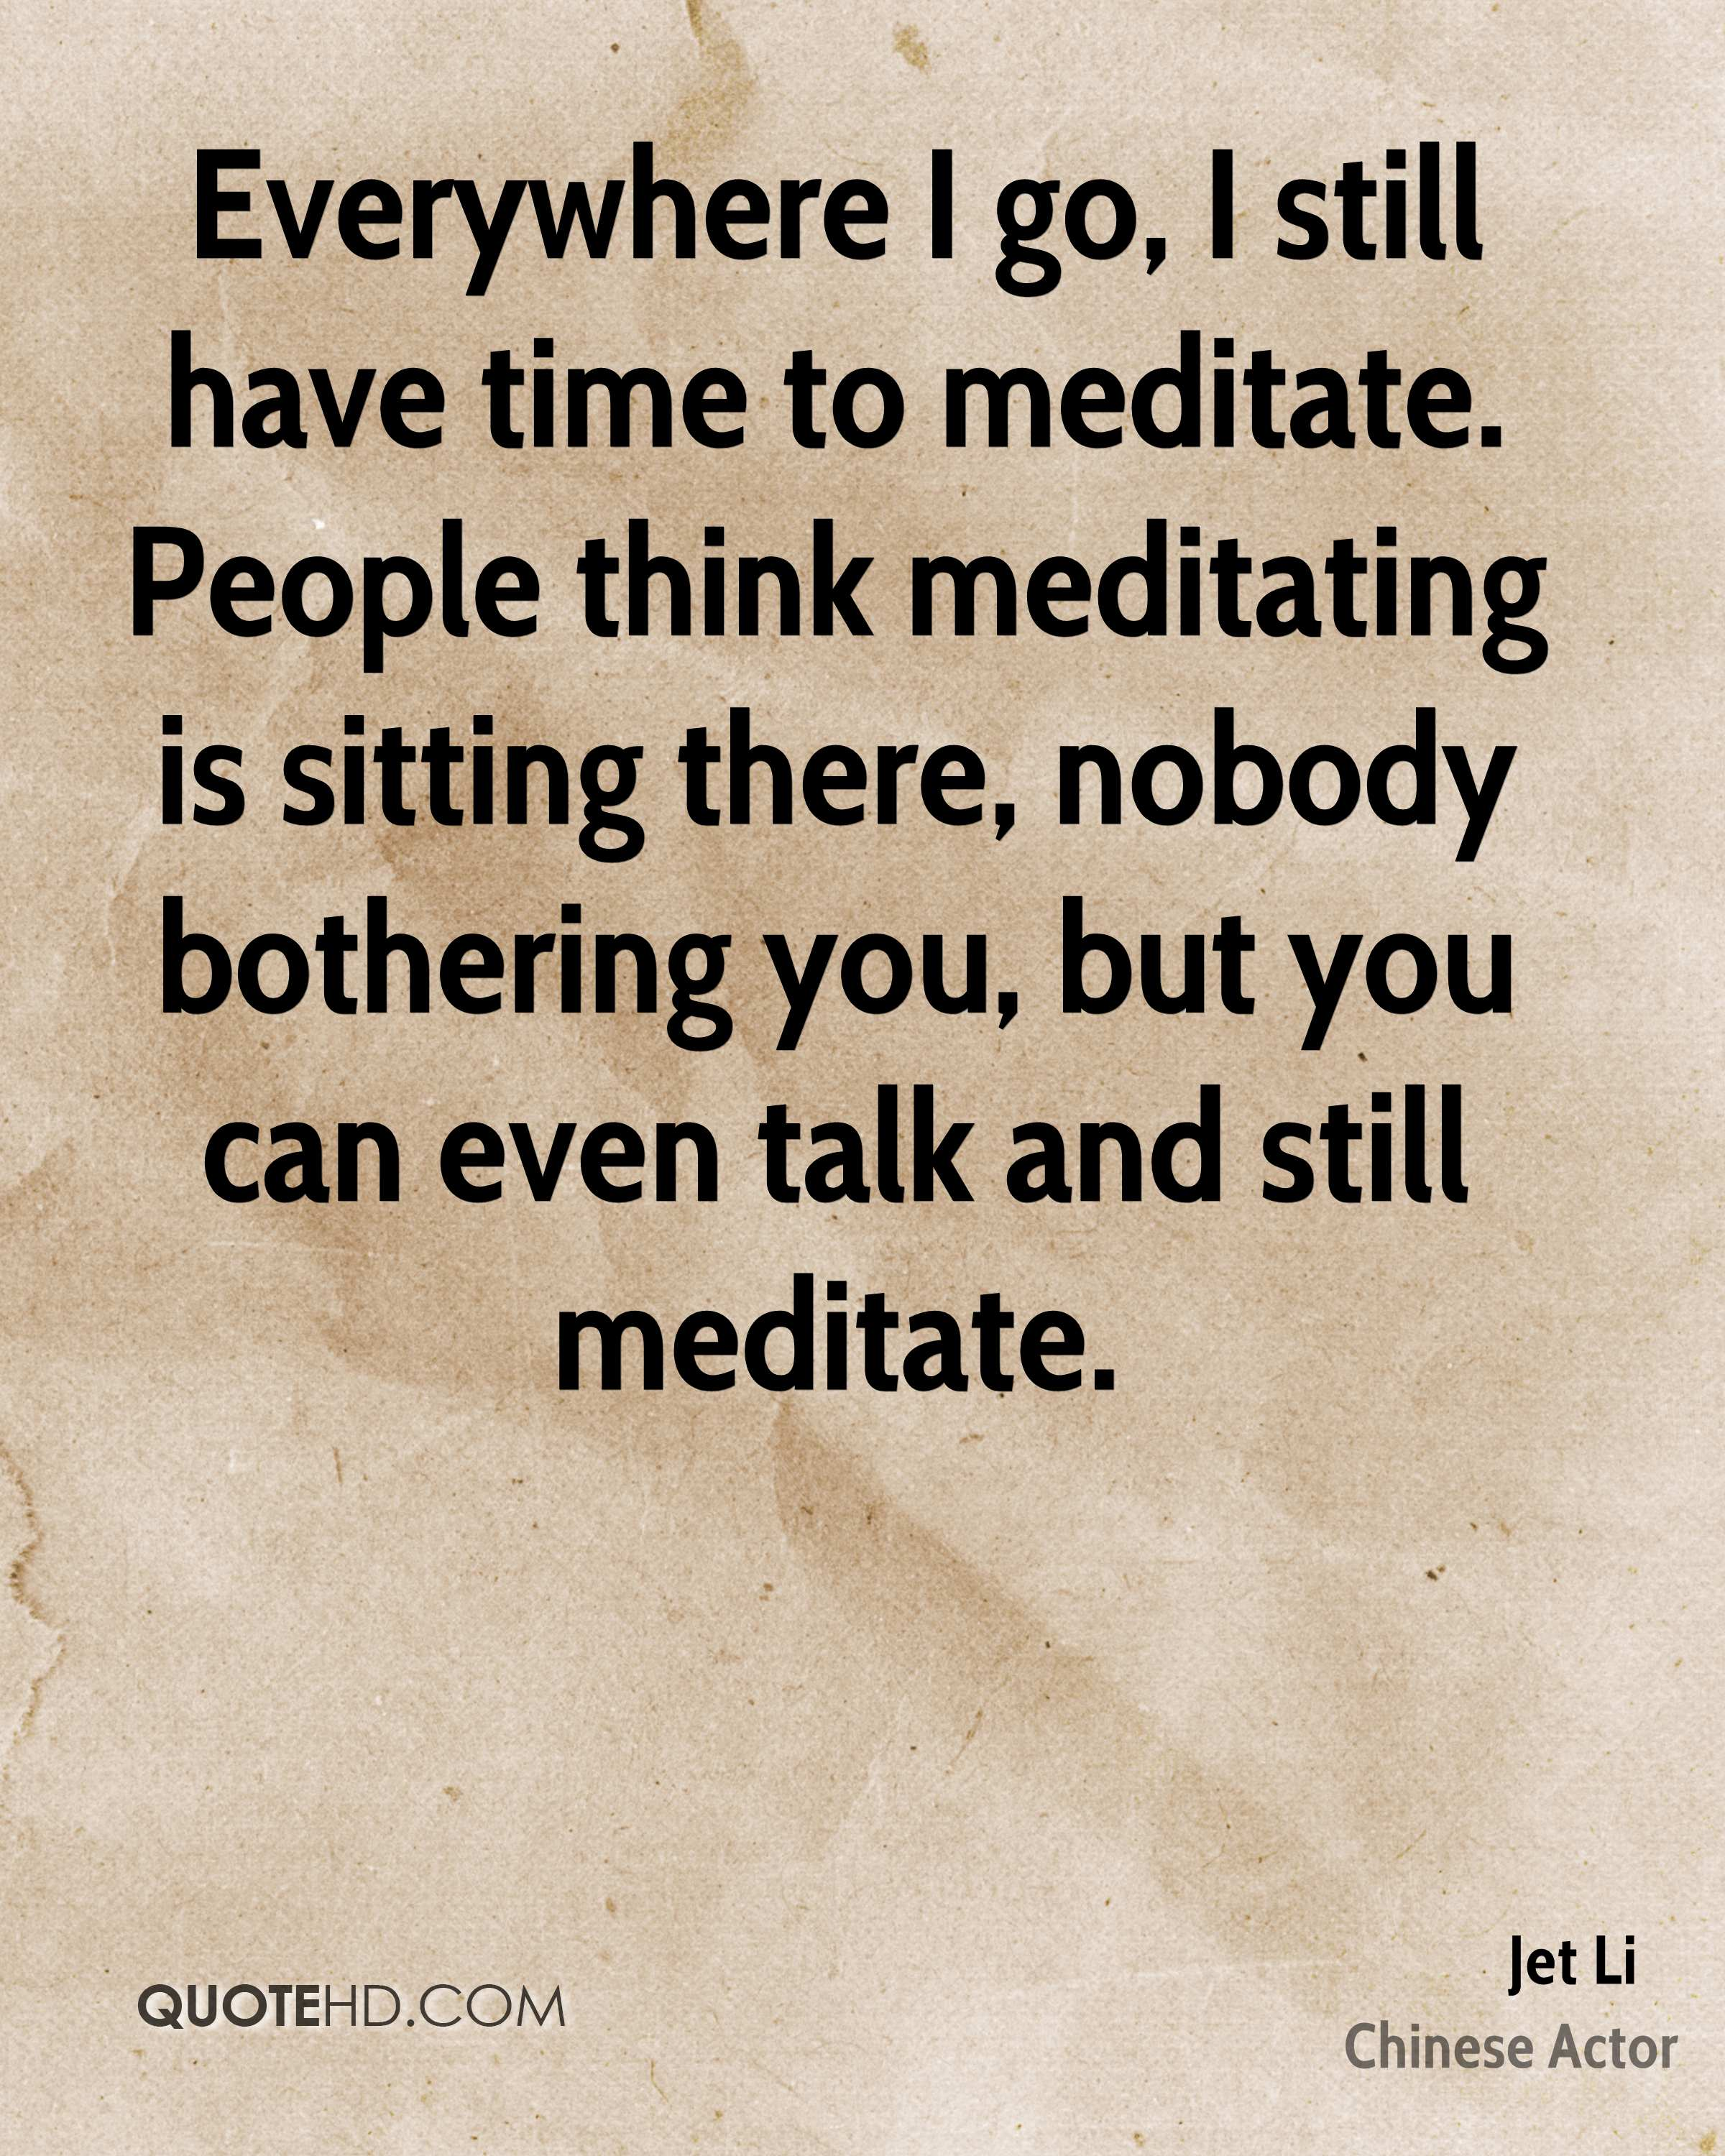 Everywhere I go, I still have time to meditate. People think meditating is sitting there, nobody bothering you, but you can even talk and still meditate.